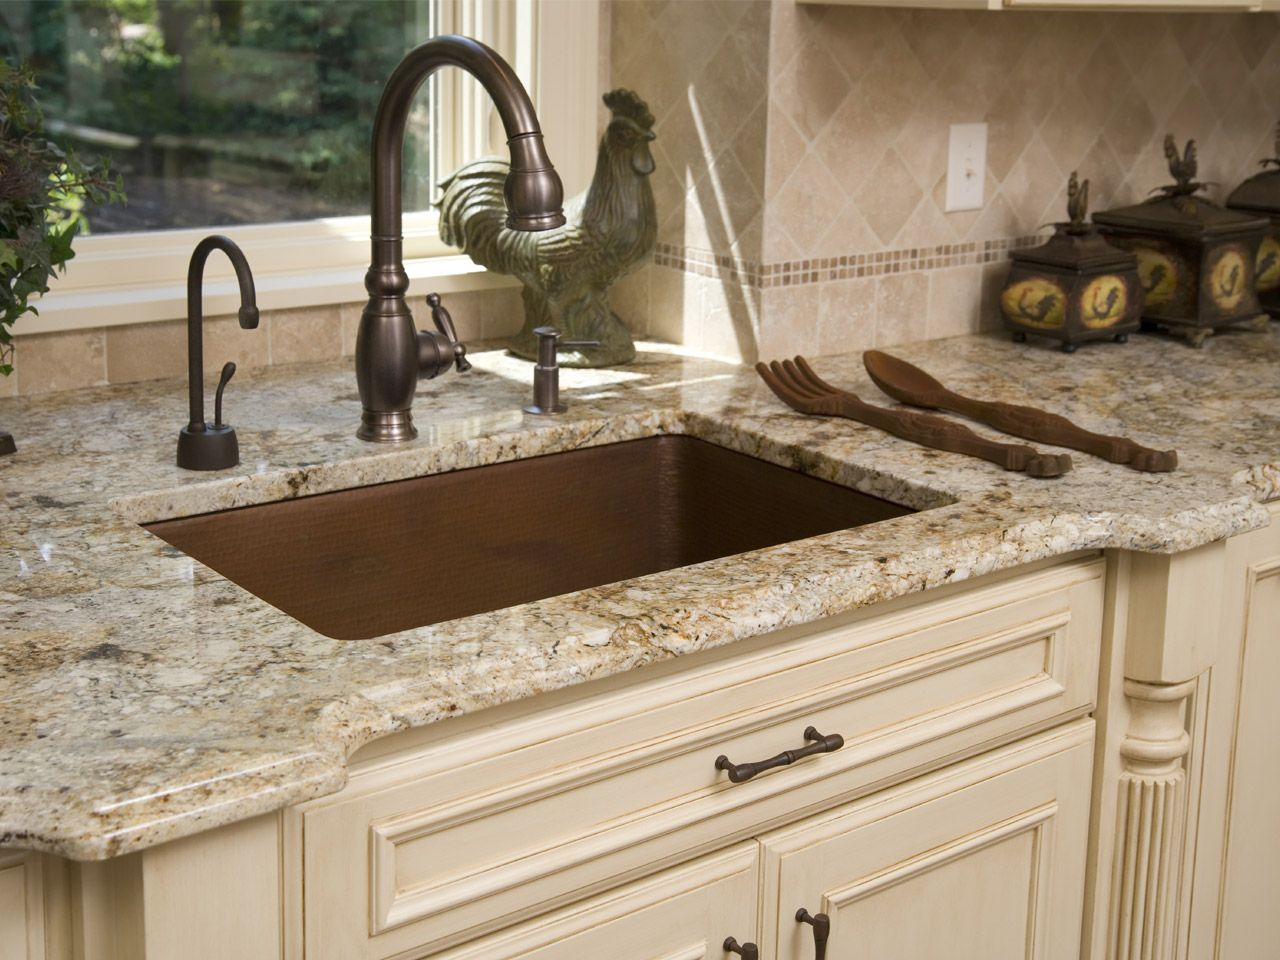 Pictures of kitchen cabinets and granite countertops - Granite Counters With Cream Colored Cabinets Your Local Kitchen Cabinets Store Roanoke Va